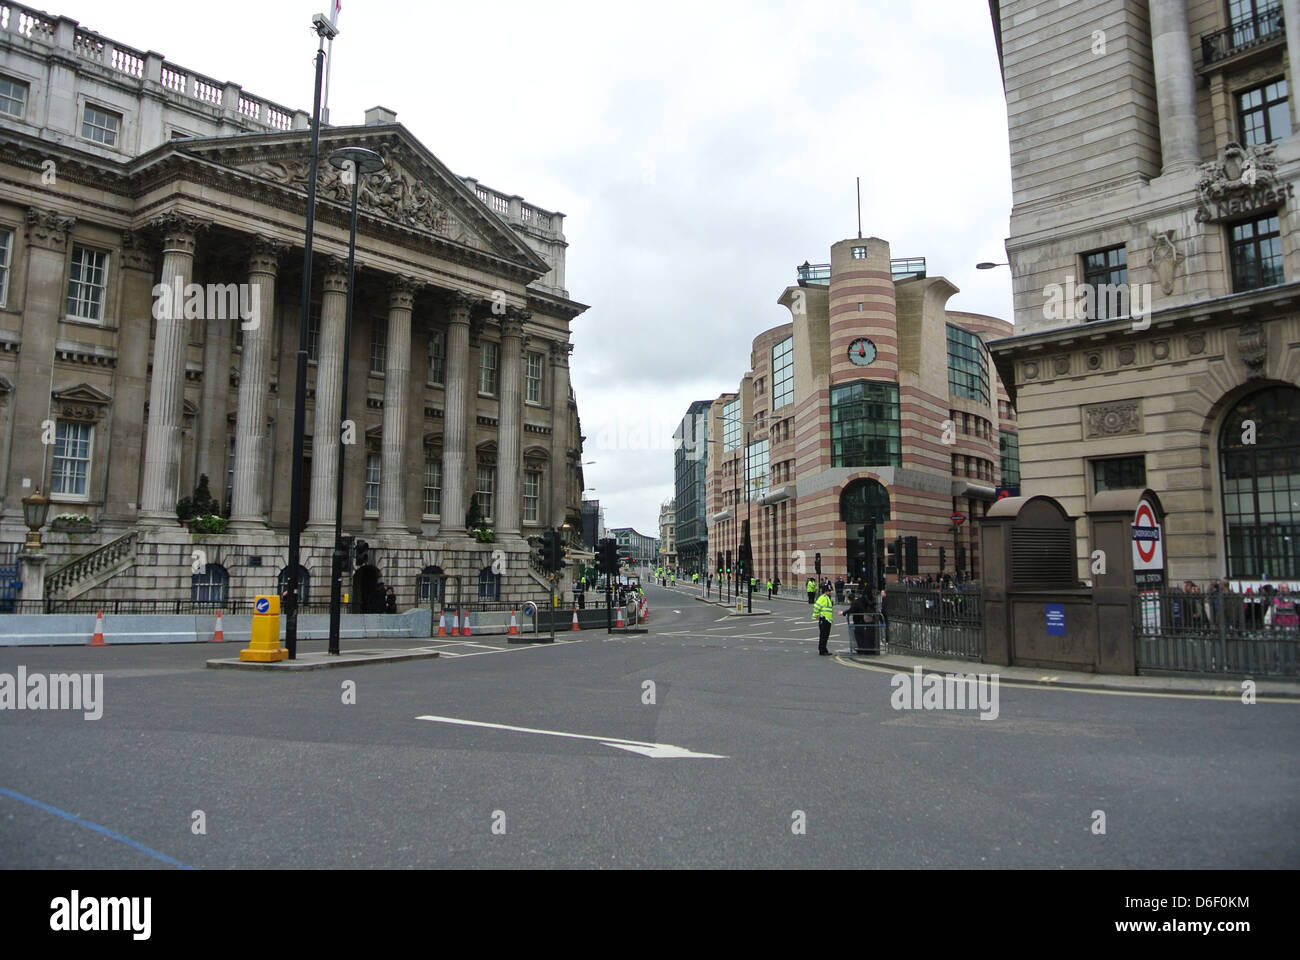 Bank station. Empty roads, no traffic, cars, buses. Day of Margaret Thatchers funeral. Line of police. London. UK - Stock Image